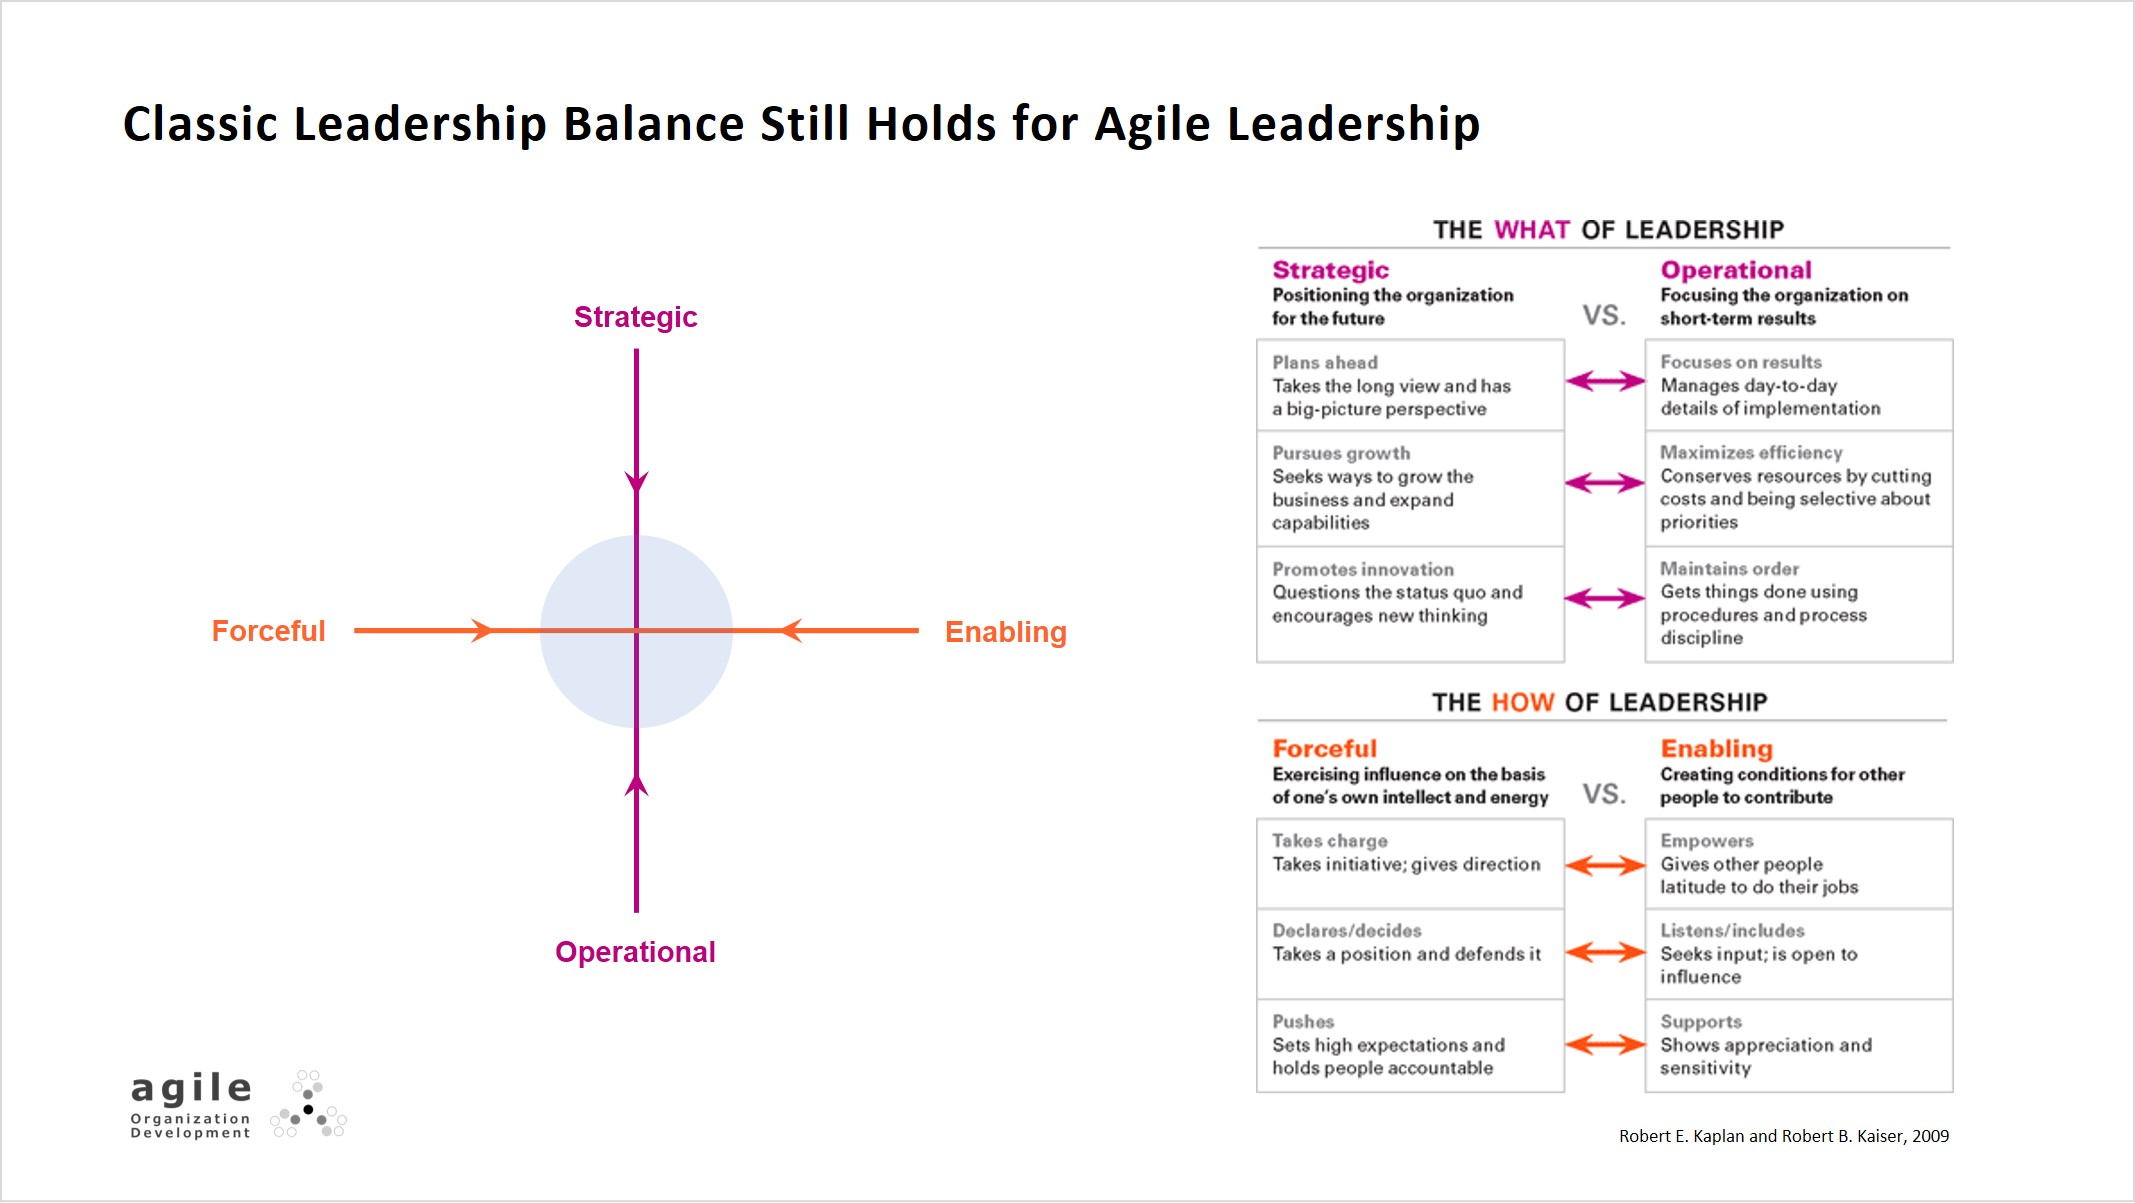 Classic leadership balance still holds for agile leadership